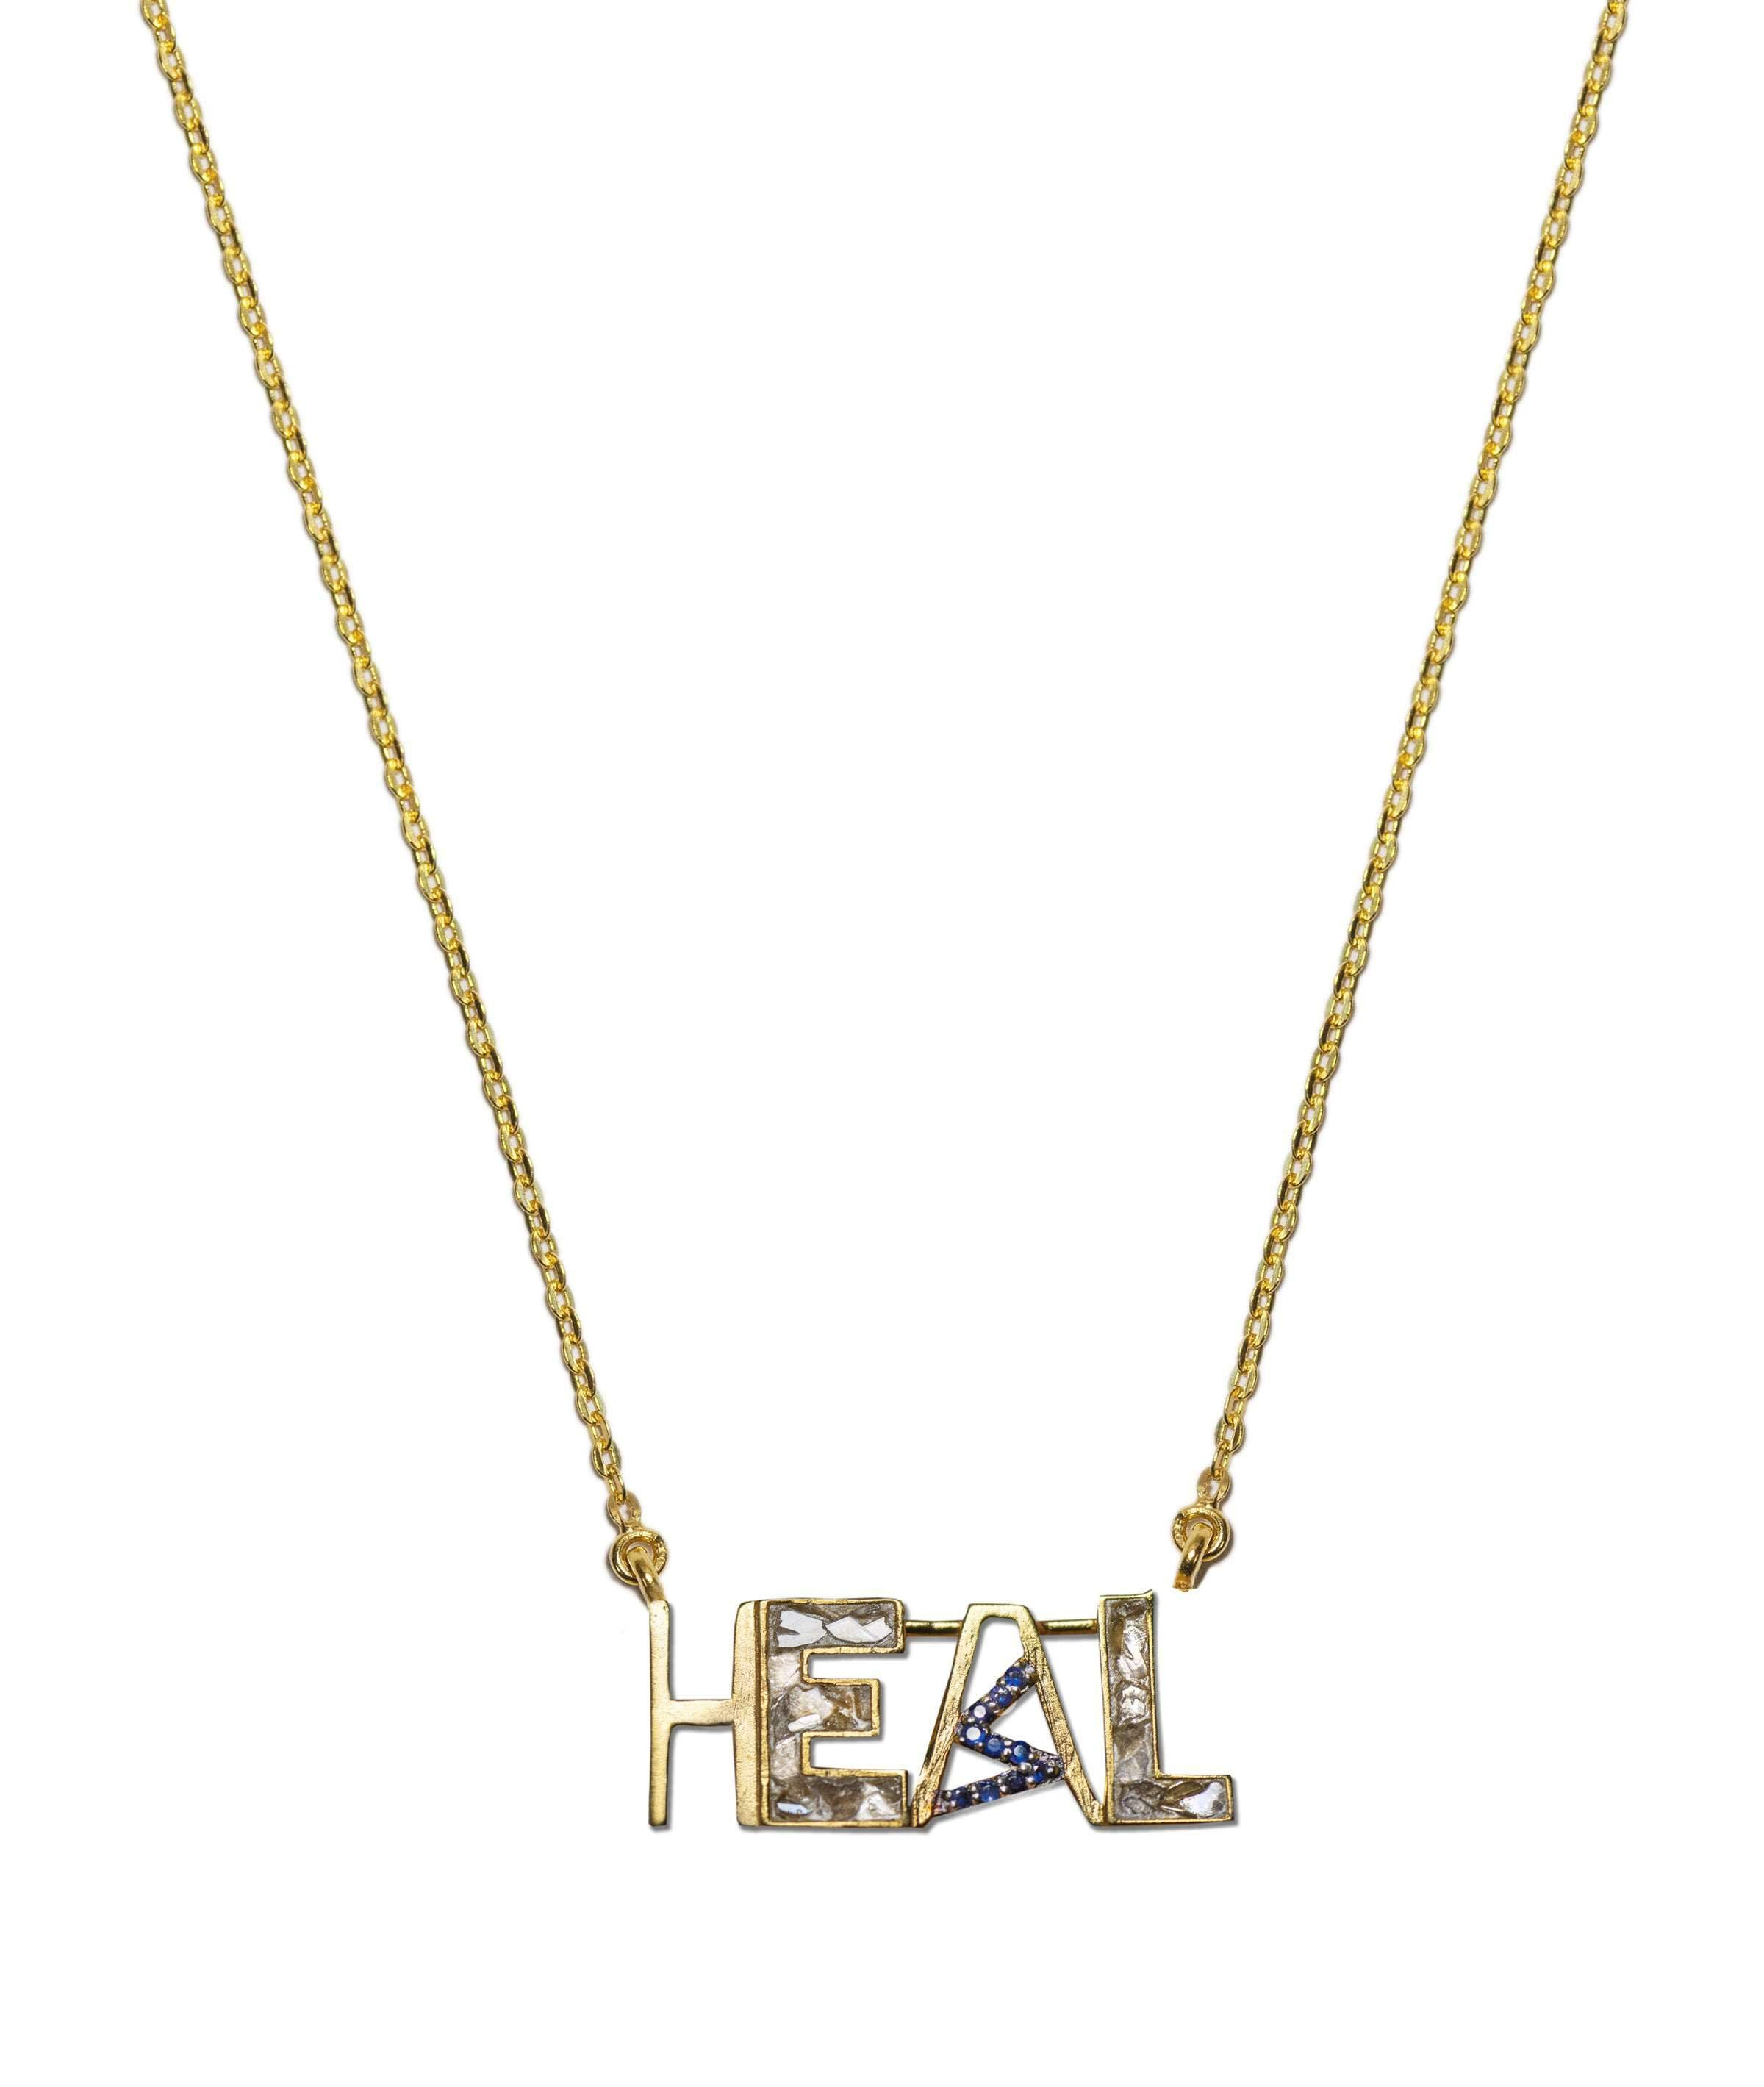 heal word pendant necklace